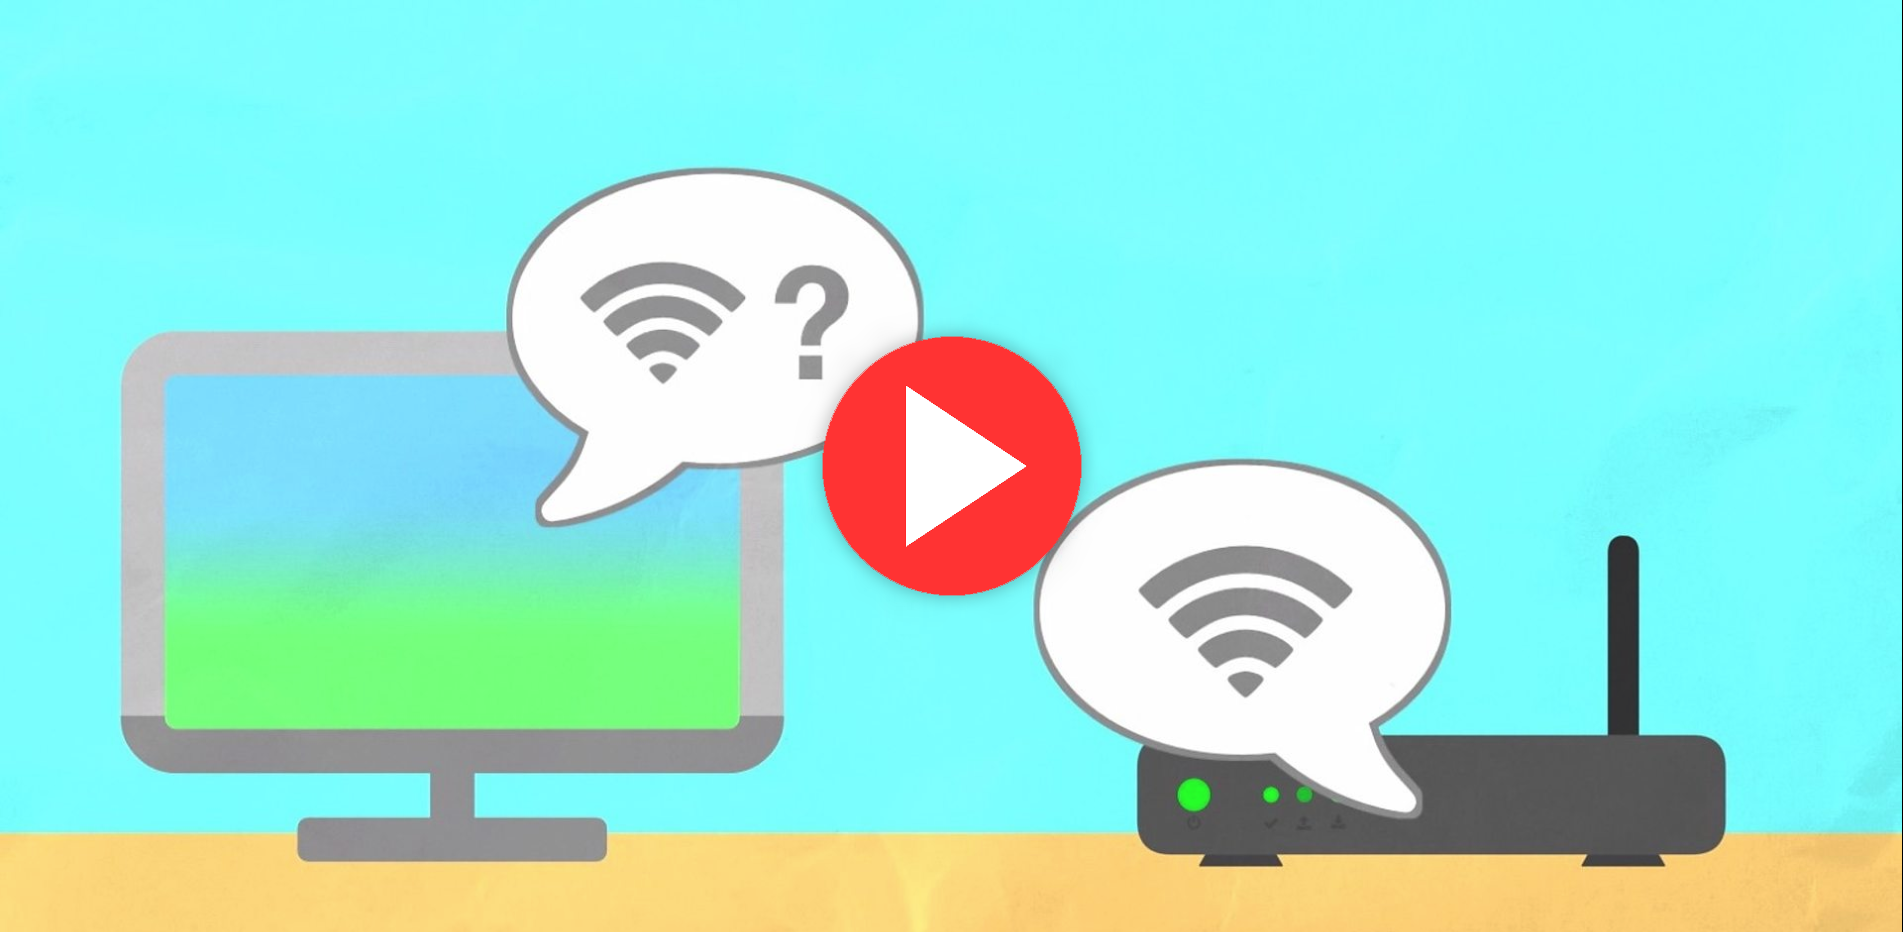 WiFi devices